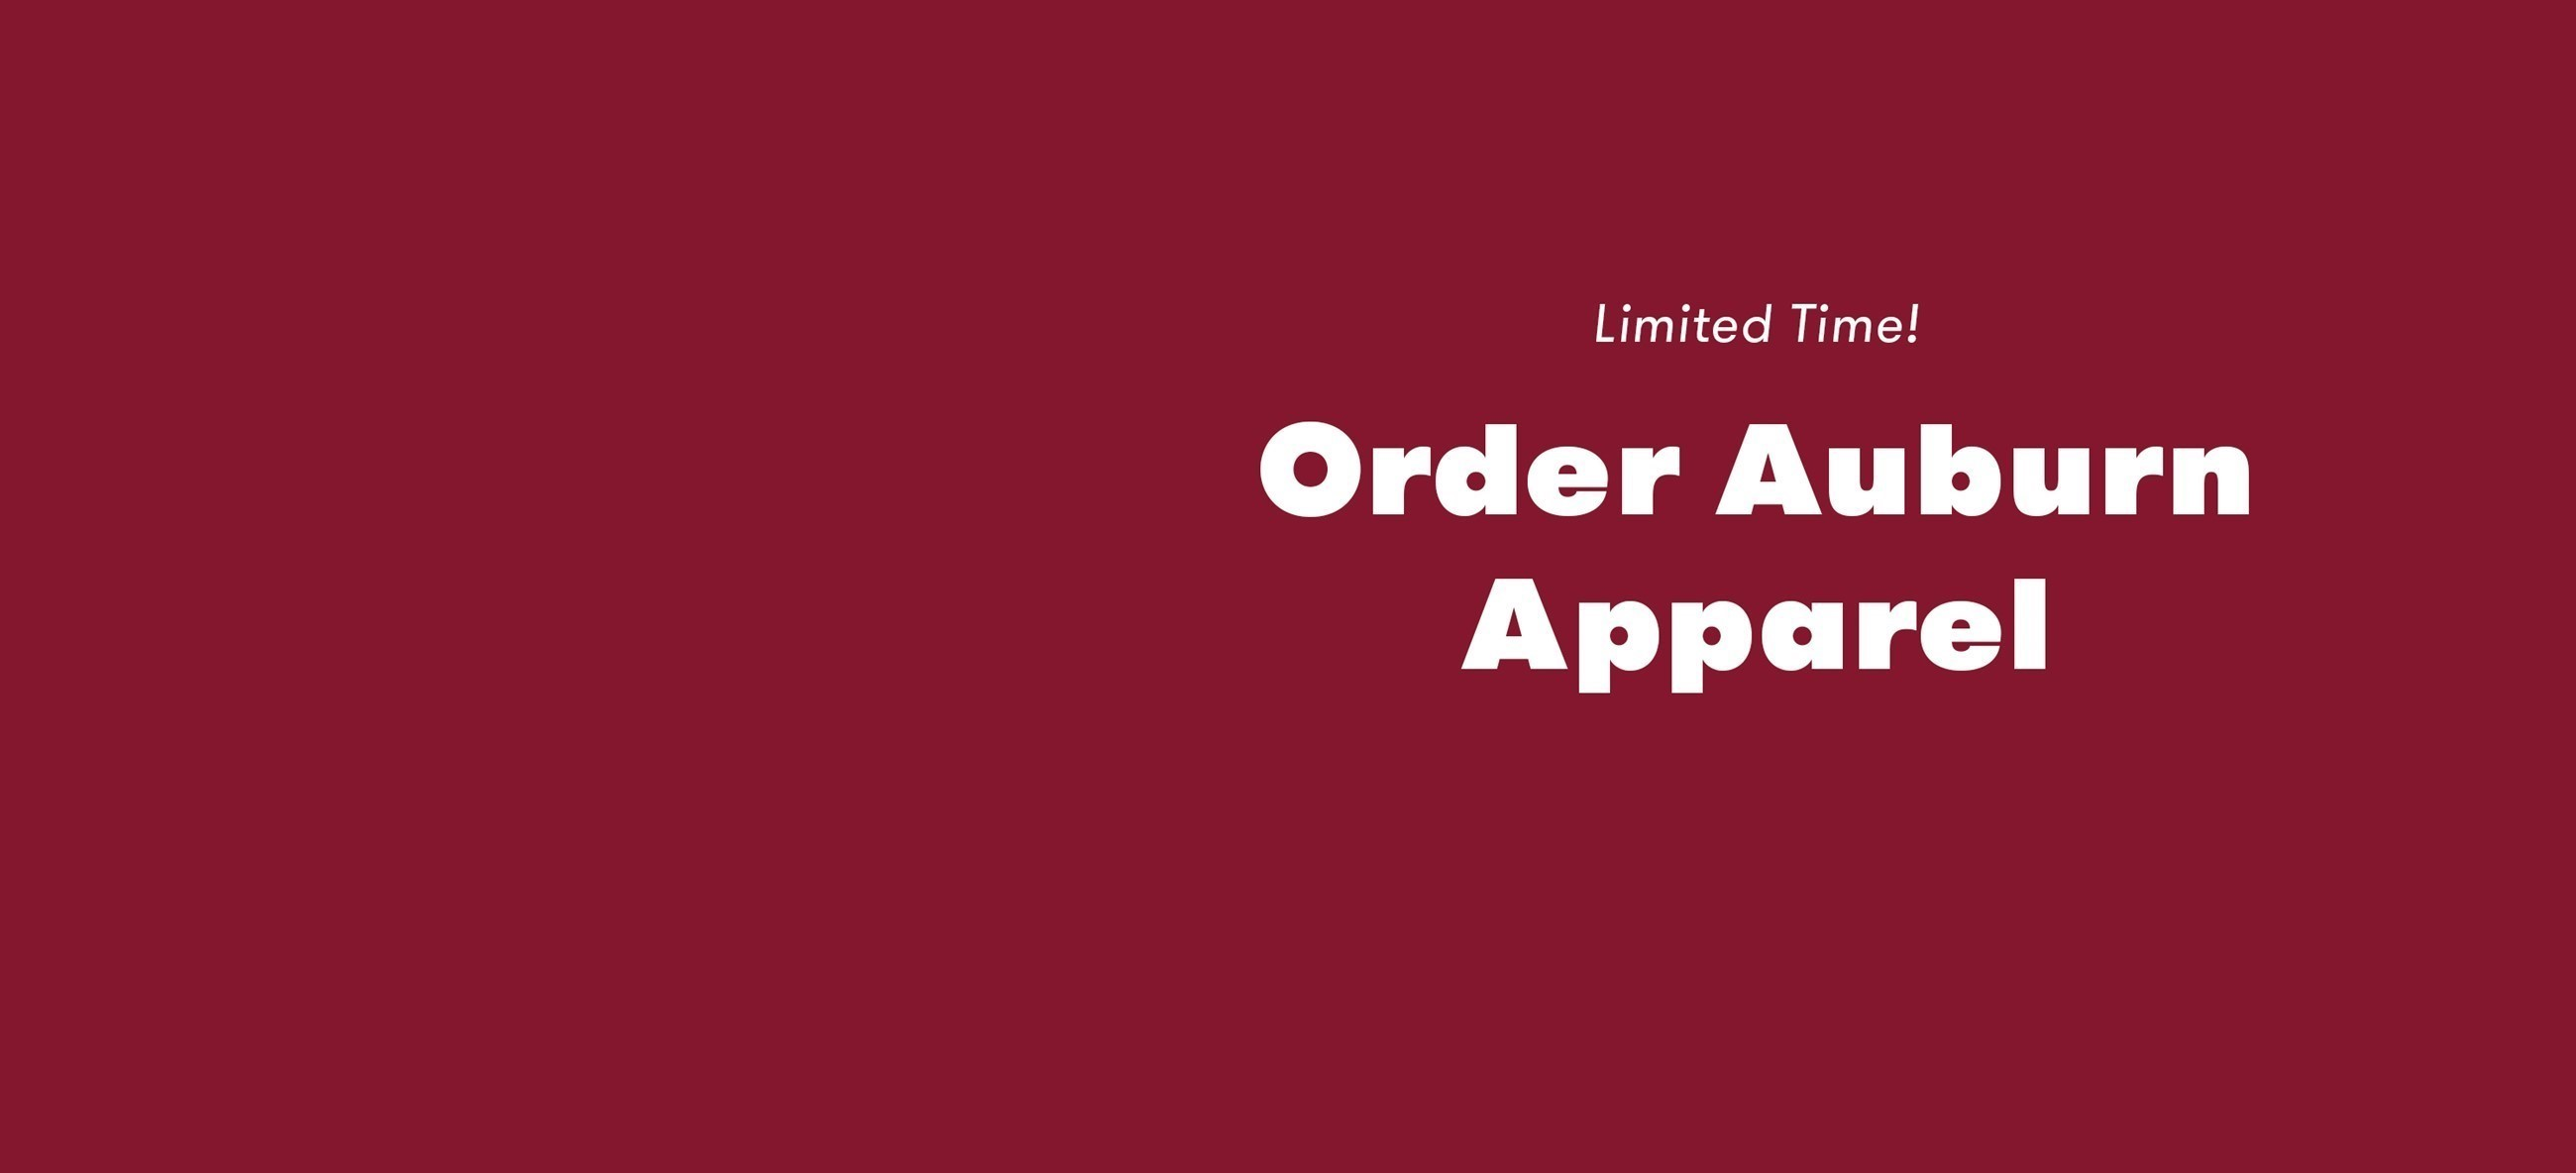 Order Auburn Apparel - Limited Time